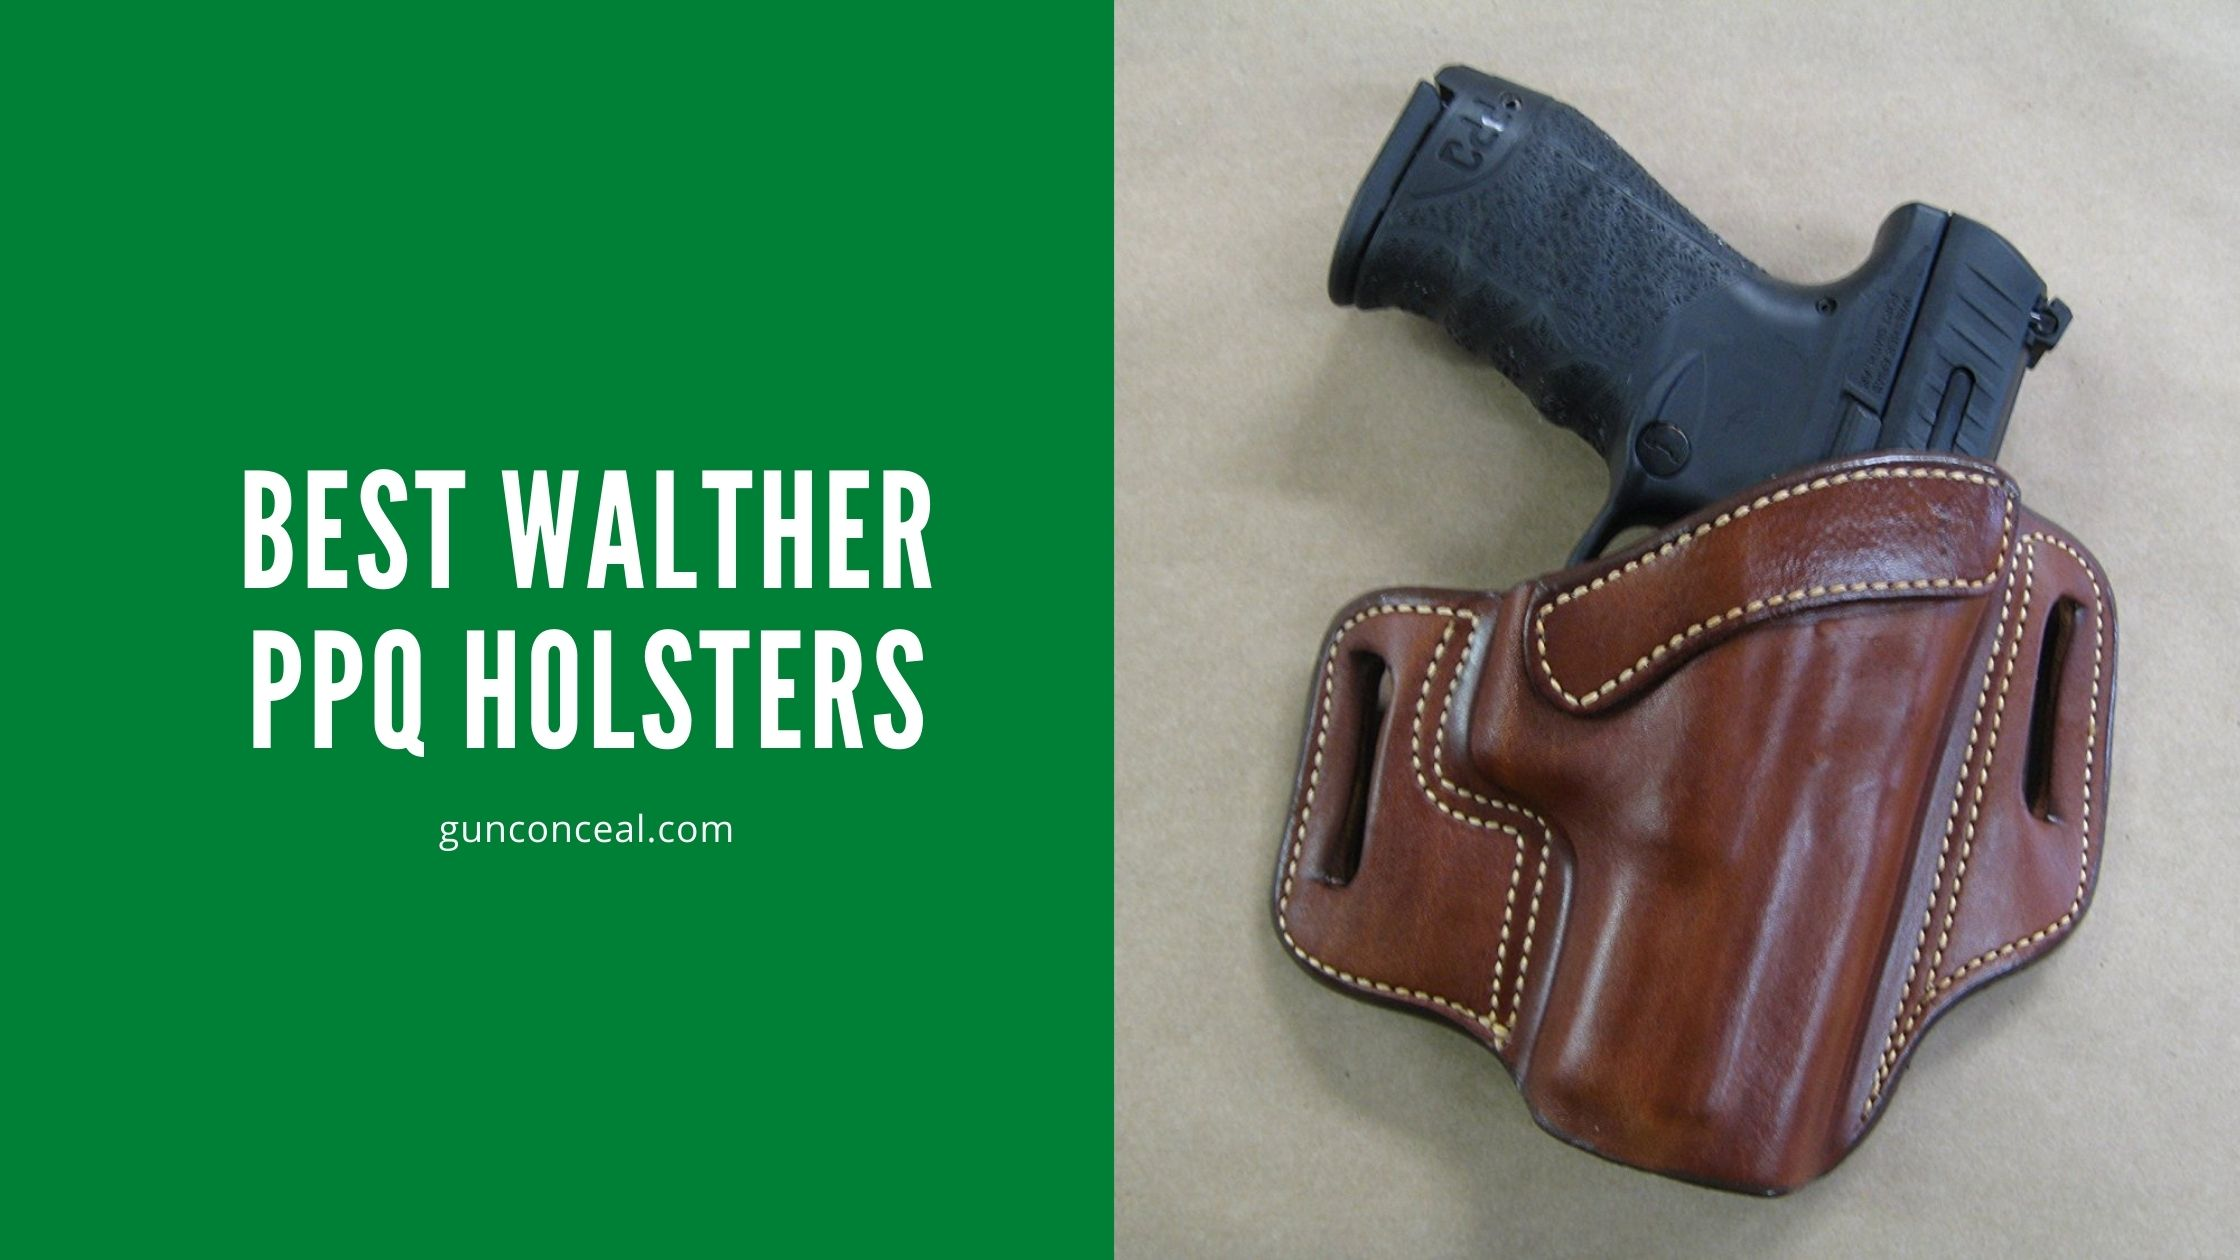 BEST WALTHER PPQ HOLSTERS